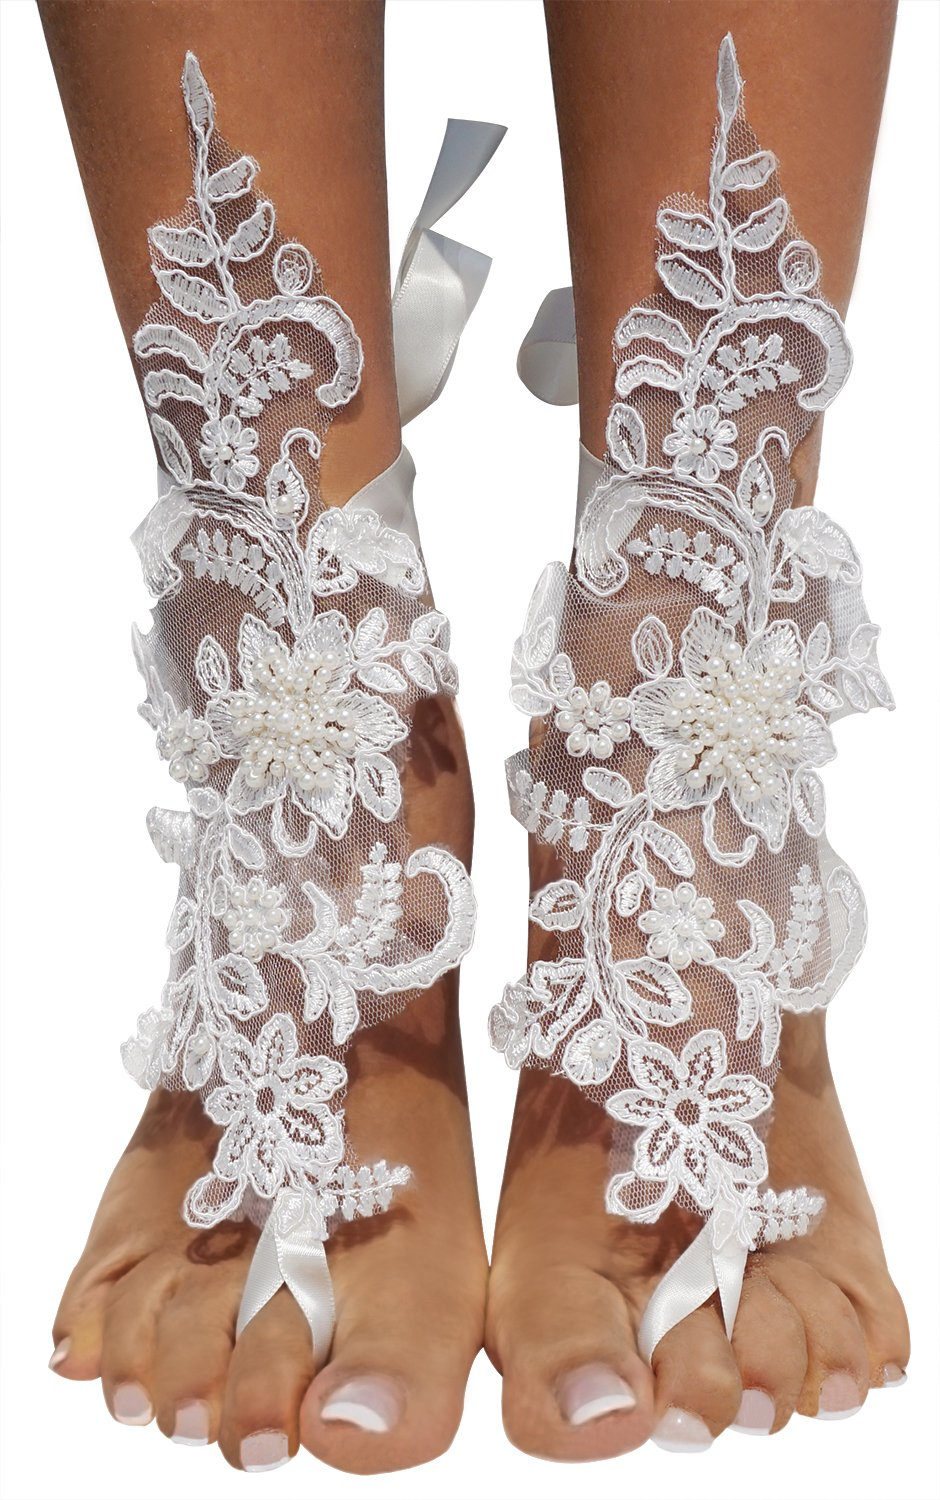 Bellady 2 PCS Crochet Barefoot Sandals Lace Anklet Bangles Beach Wedding Accessories,White